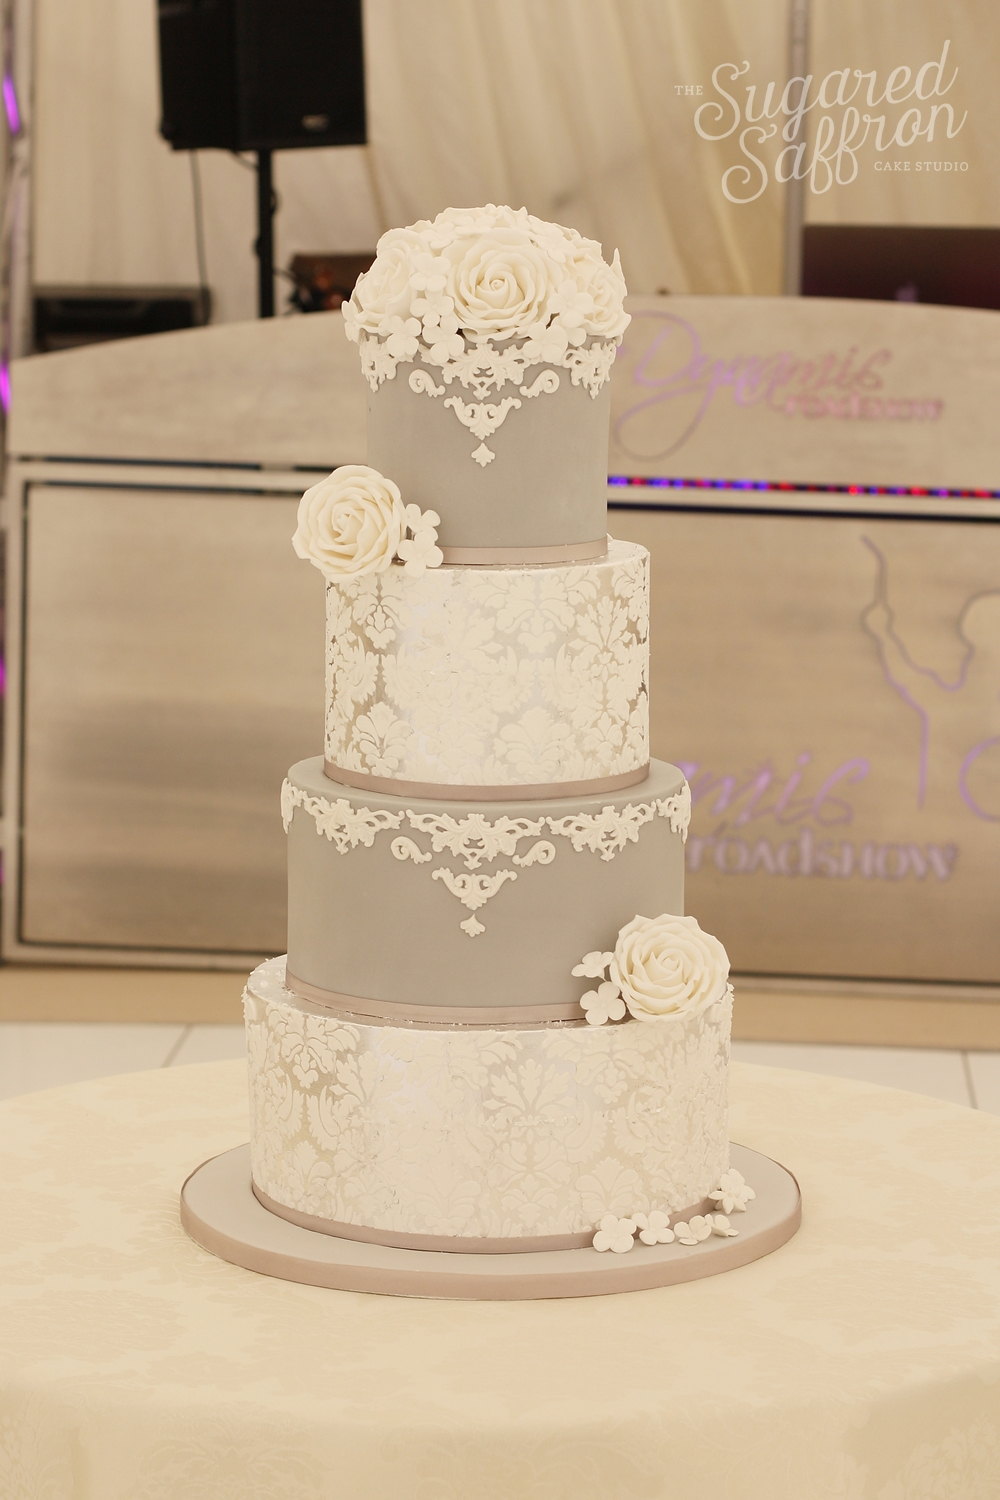 grey cake with silver leaf and white damask. white sugar roses